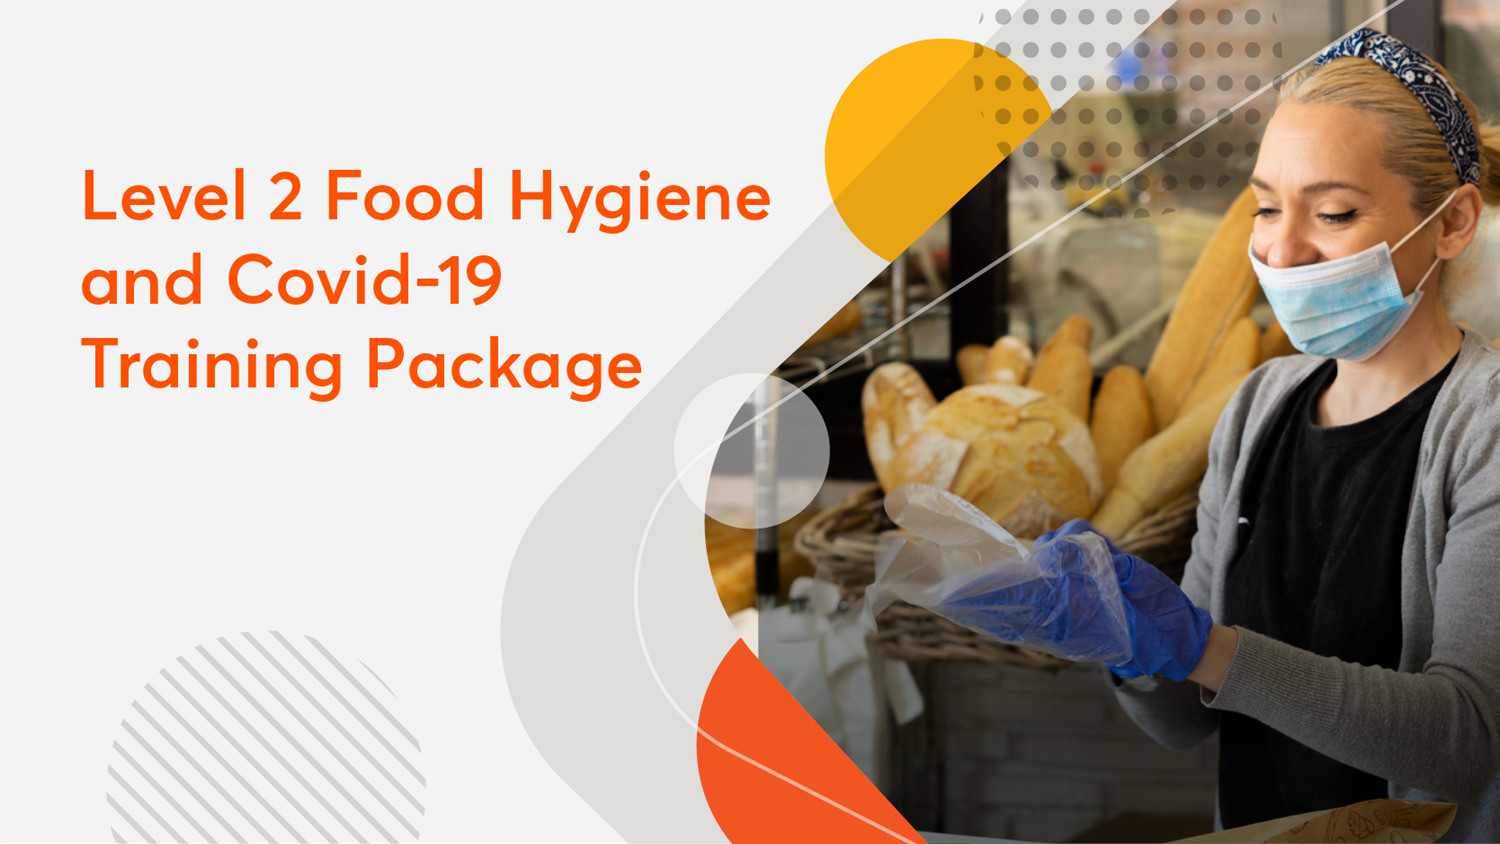 level_2_food_hygiene_and_covid_19_training_package